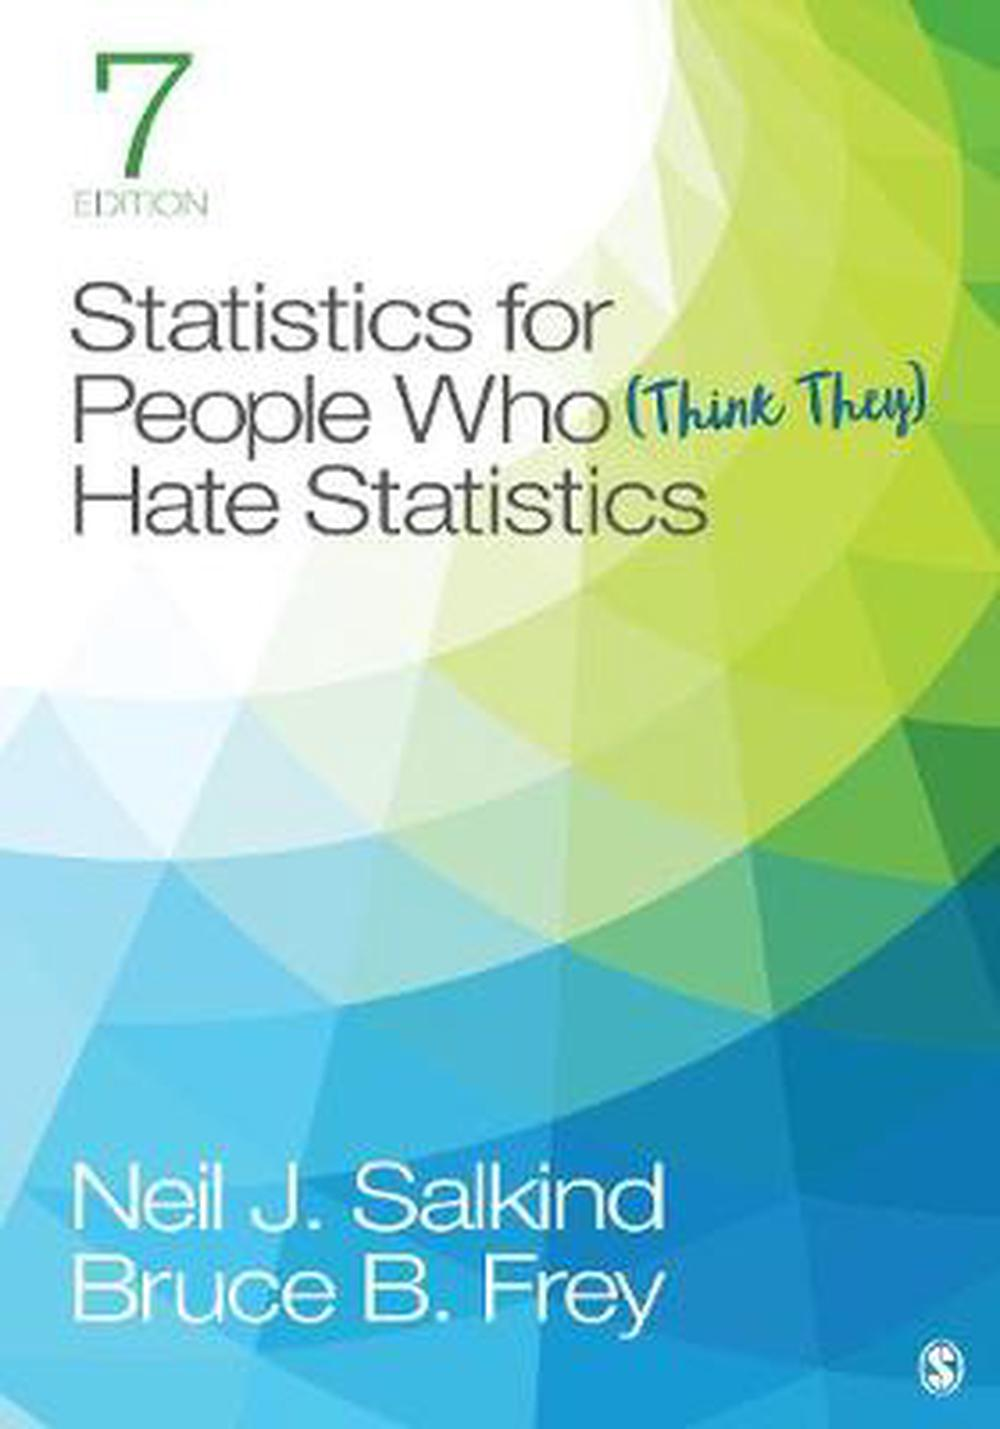 Statistics for People Who (think they) Hate Statistics, 7th ed.